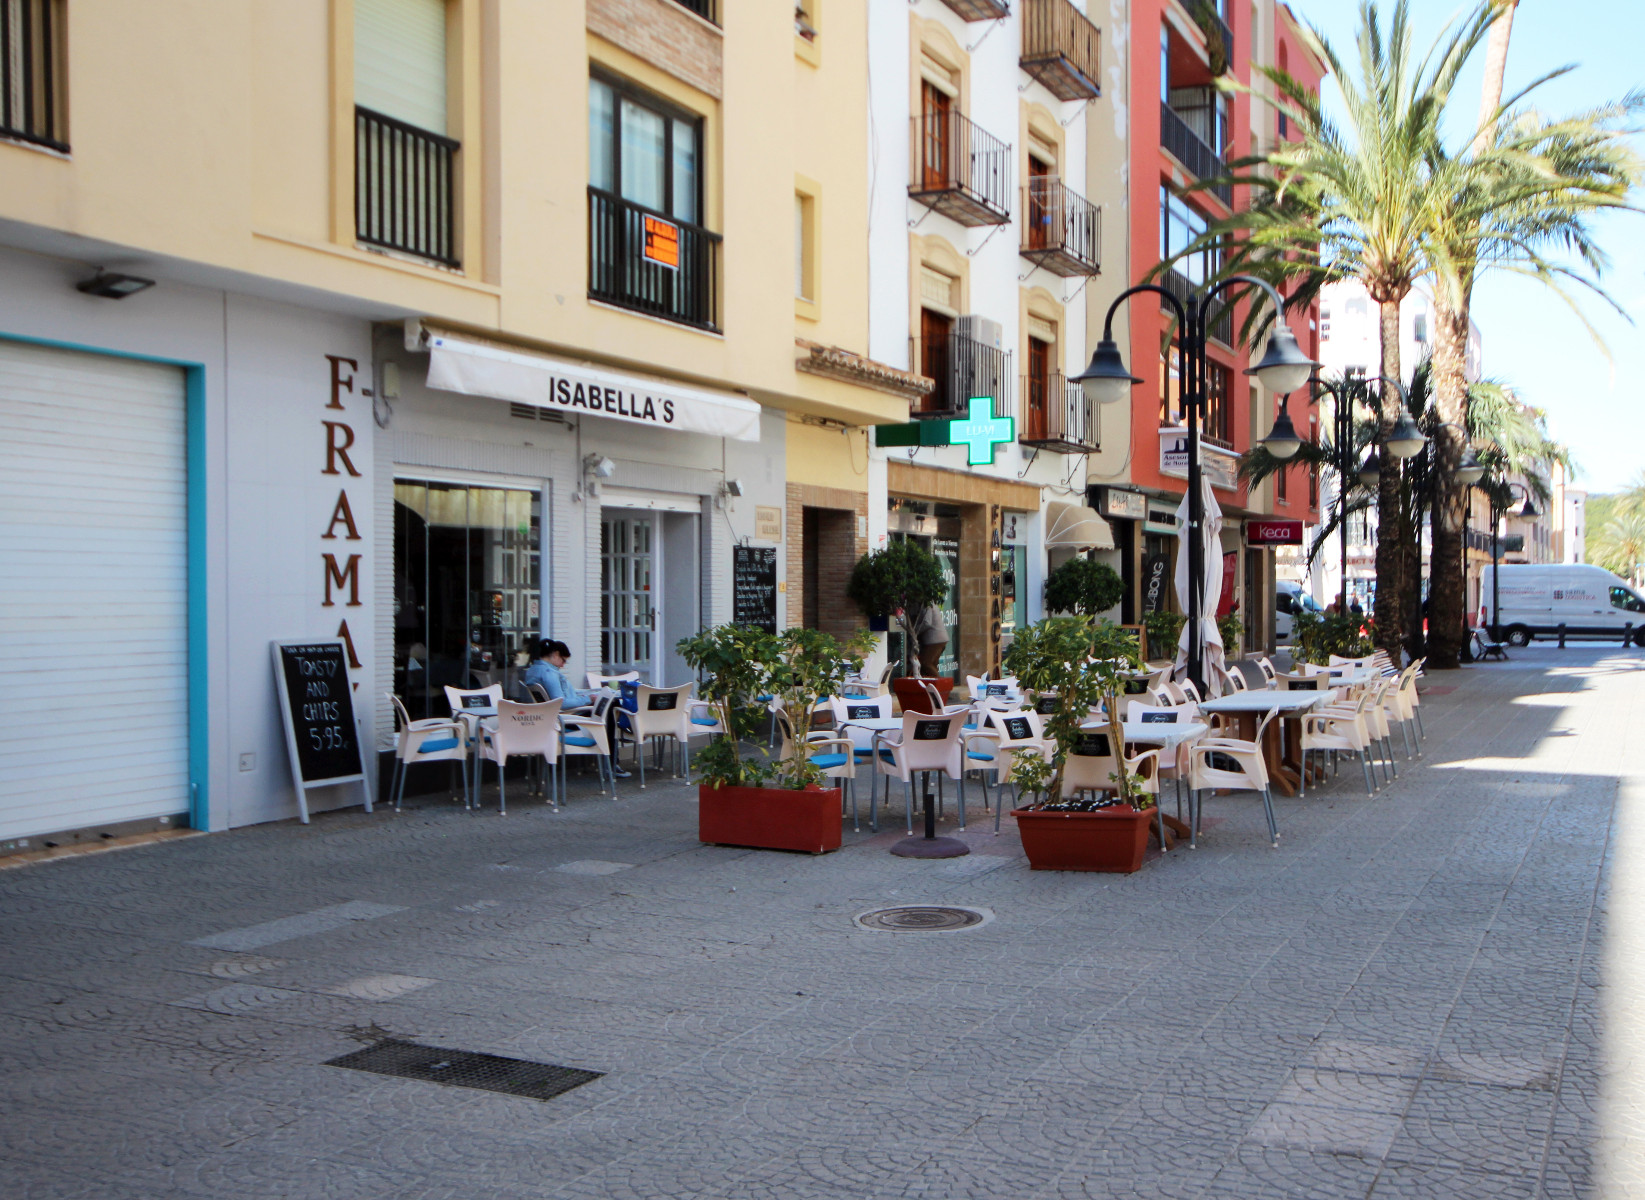 Commercial for sale in Moraira – VS02771M